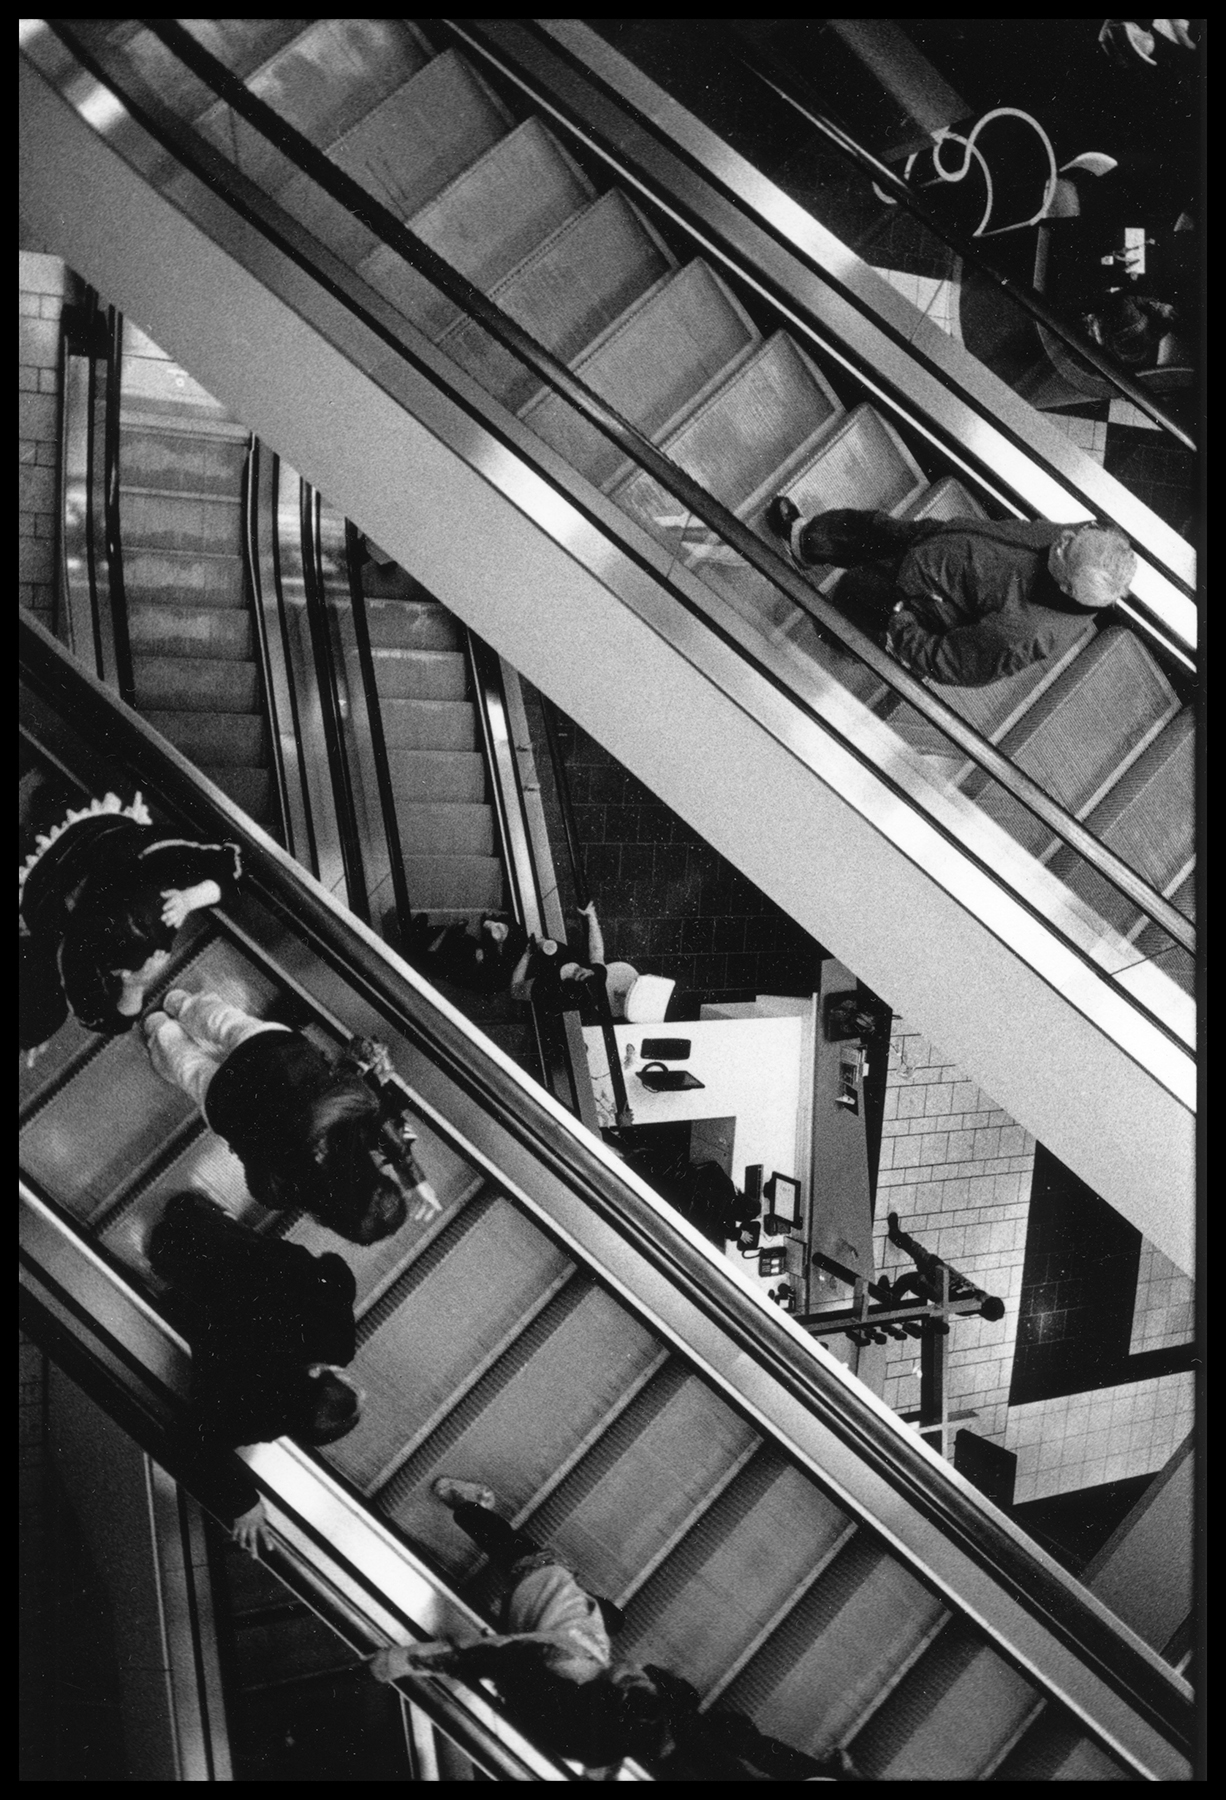 Liza_Botkin_Escalators_Homage_A_Escher_3.jpg